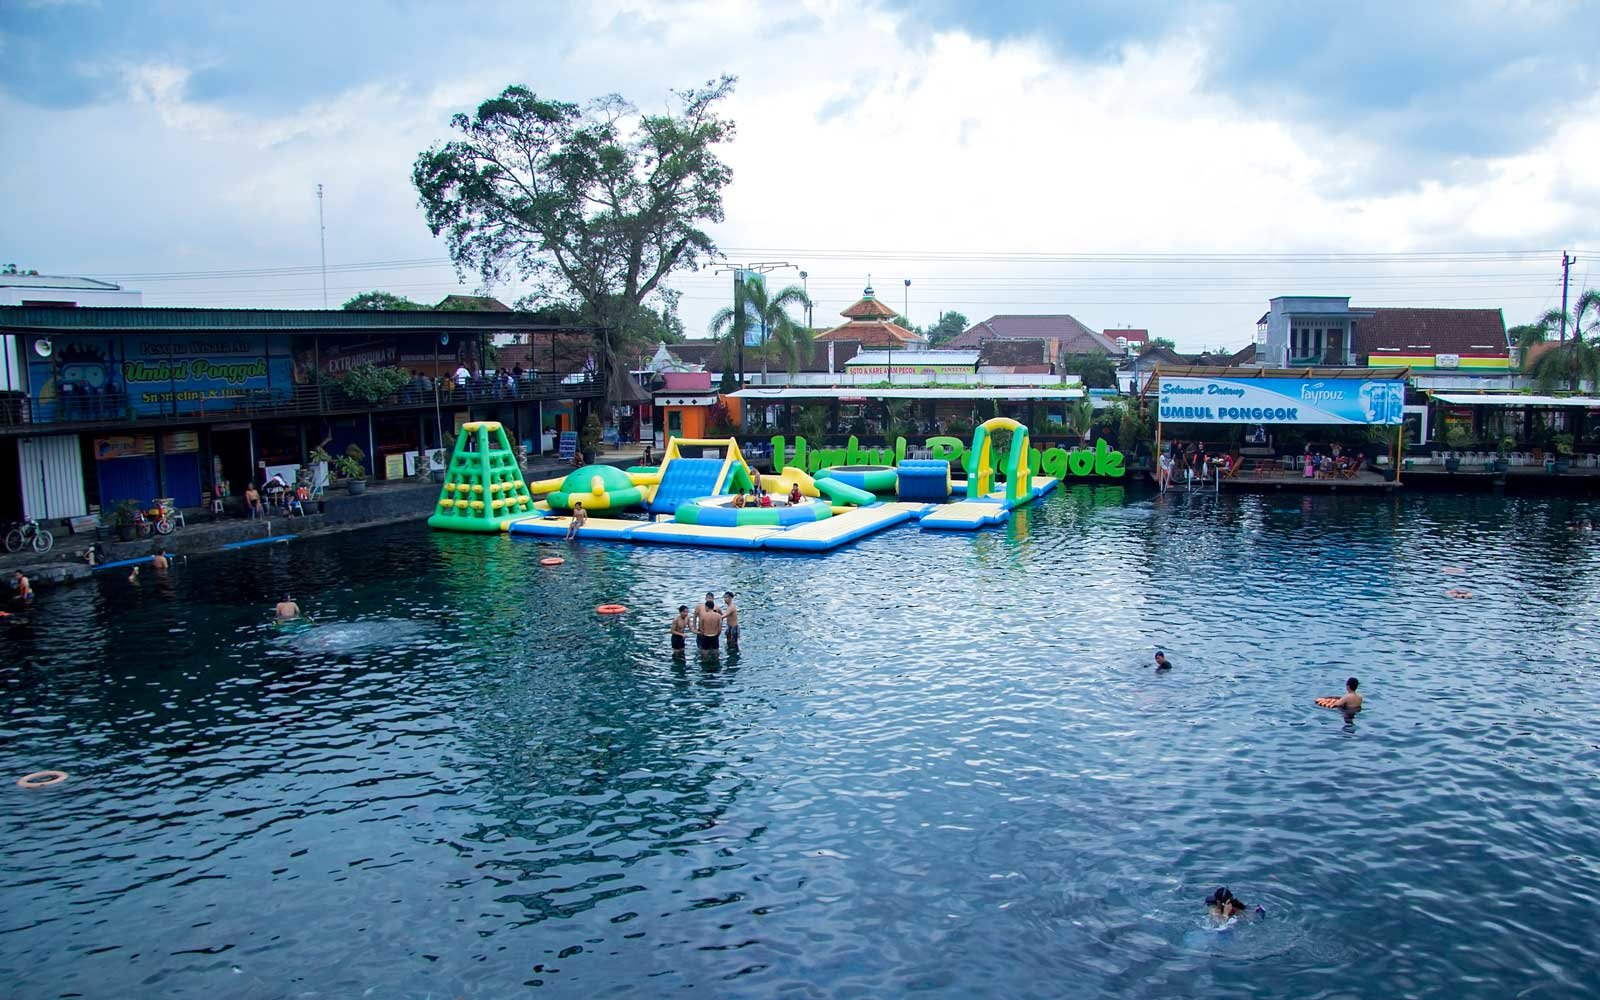 Klaten, Indonesia - January 31, 2019 umbul Ponggok is a water tourism or swimming pool located in Ponggok village, Klaten, Central Java